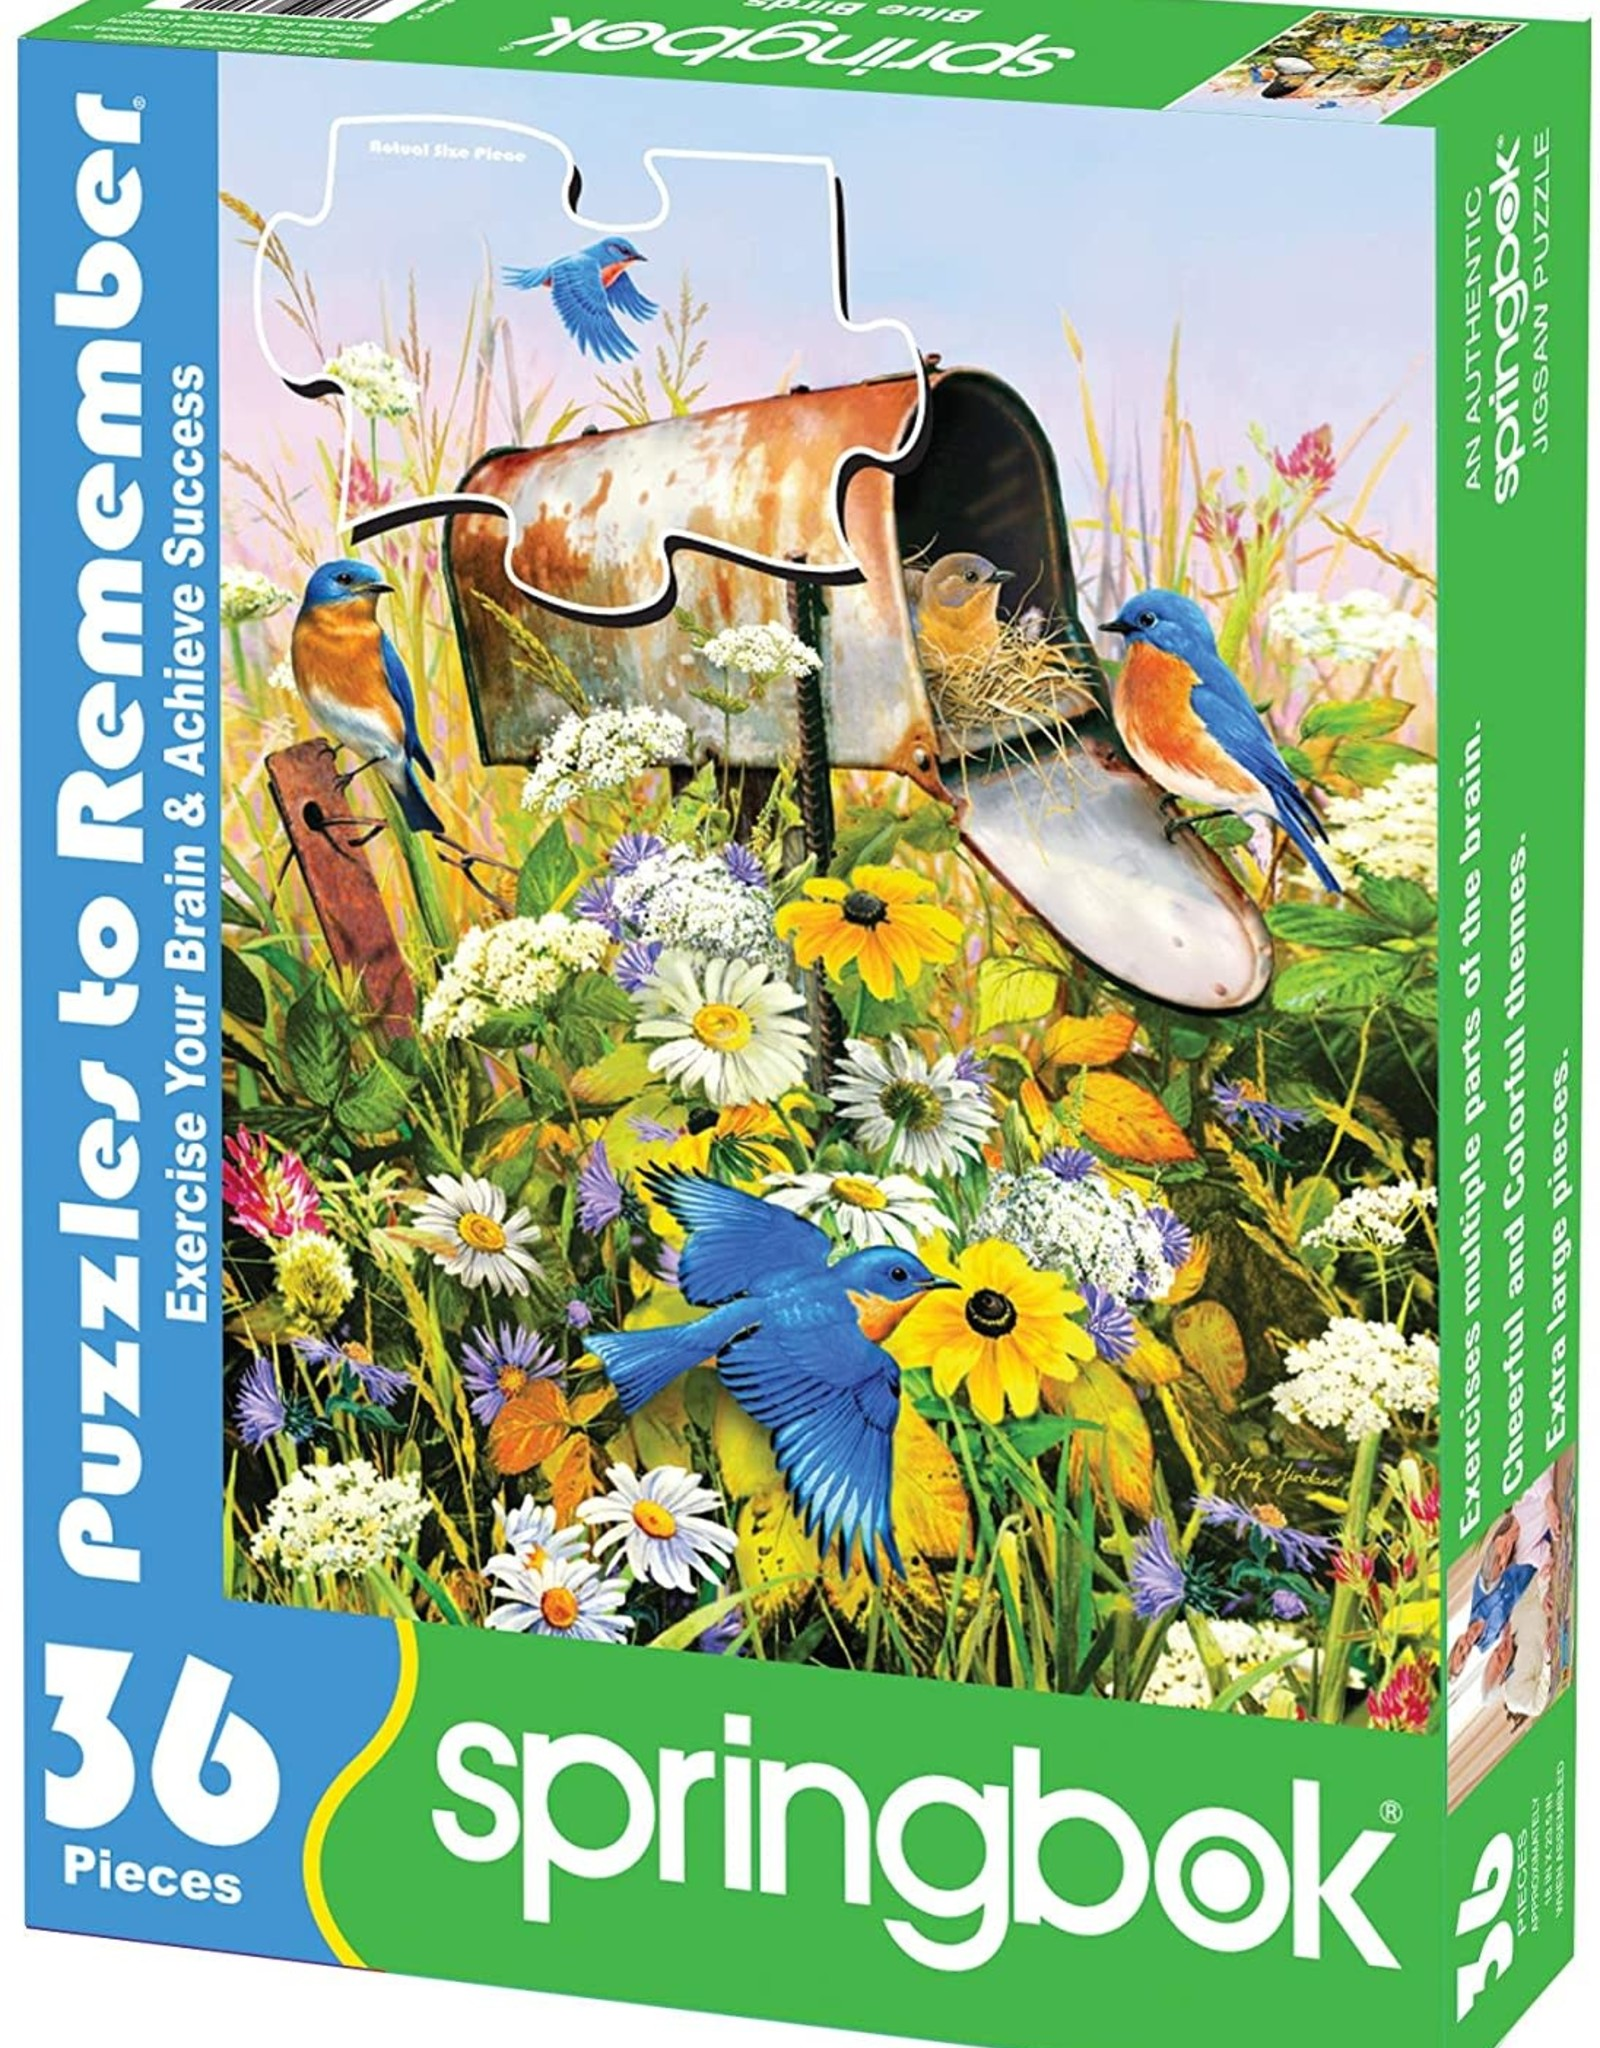 Springbok Blue Birds 36 pc